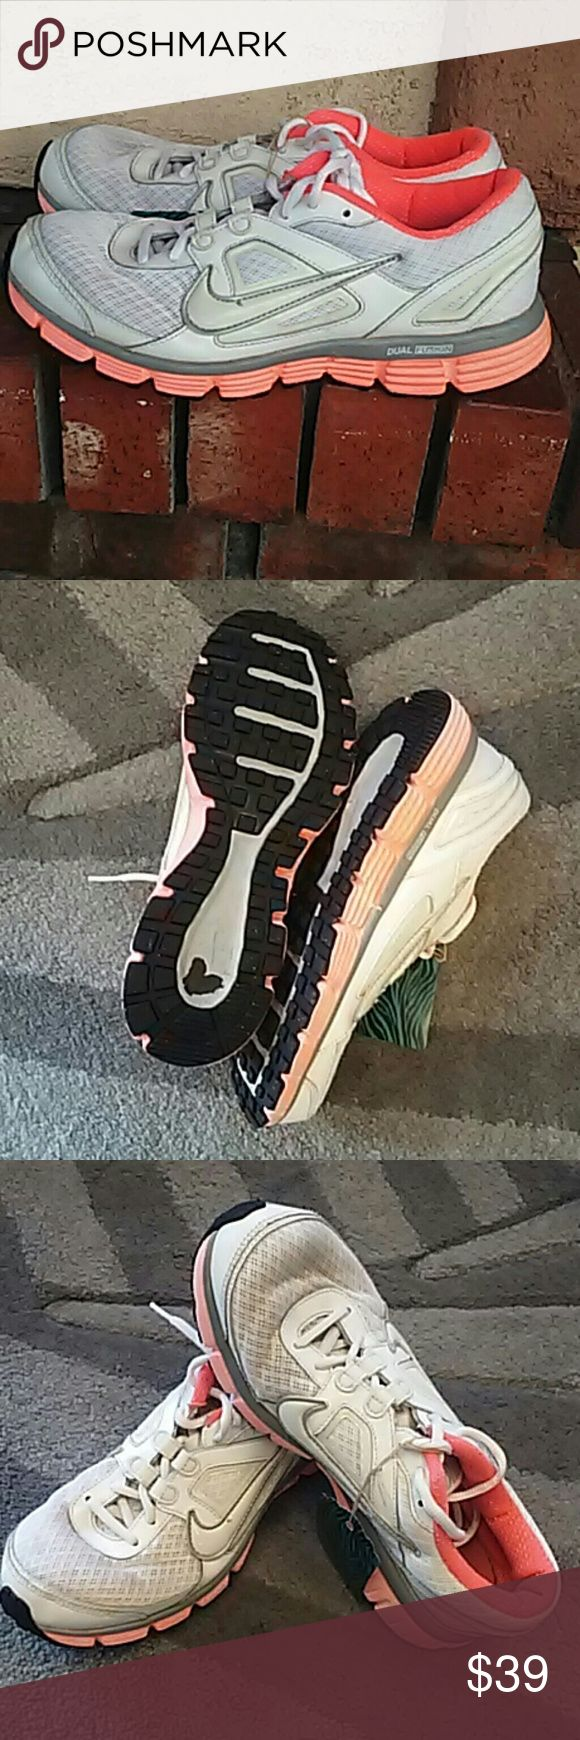 Women's Nike Dual fusion shoes White and coroal orange Nike Dual fusion tennis shoes. In excellent used condition bottoms don't look used. See pic #2 sold as is see all pictures and ASK all questions before you purchase. Dont need unnecessary RETURNS. Thank you Nike Shoes Sneakers